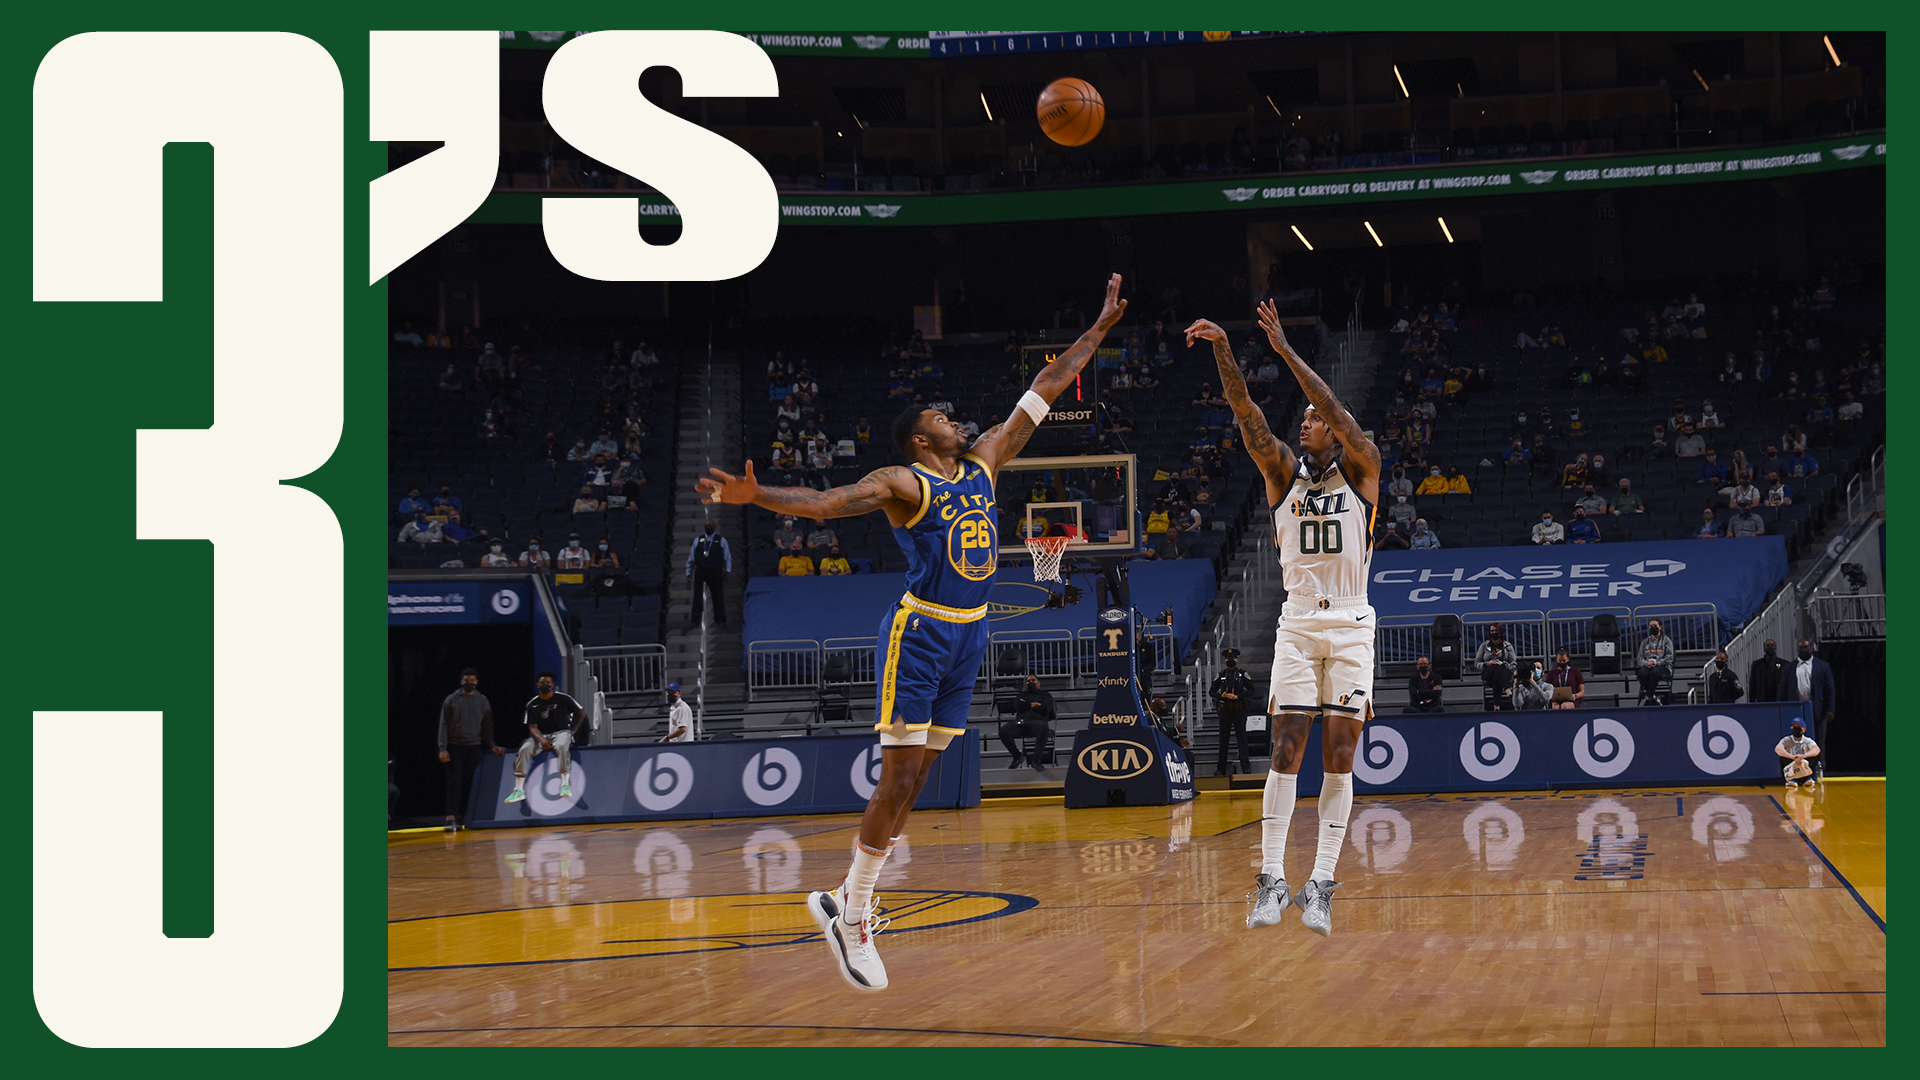 JC with the crossover!   #ThreesOfTheWeek